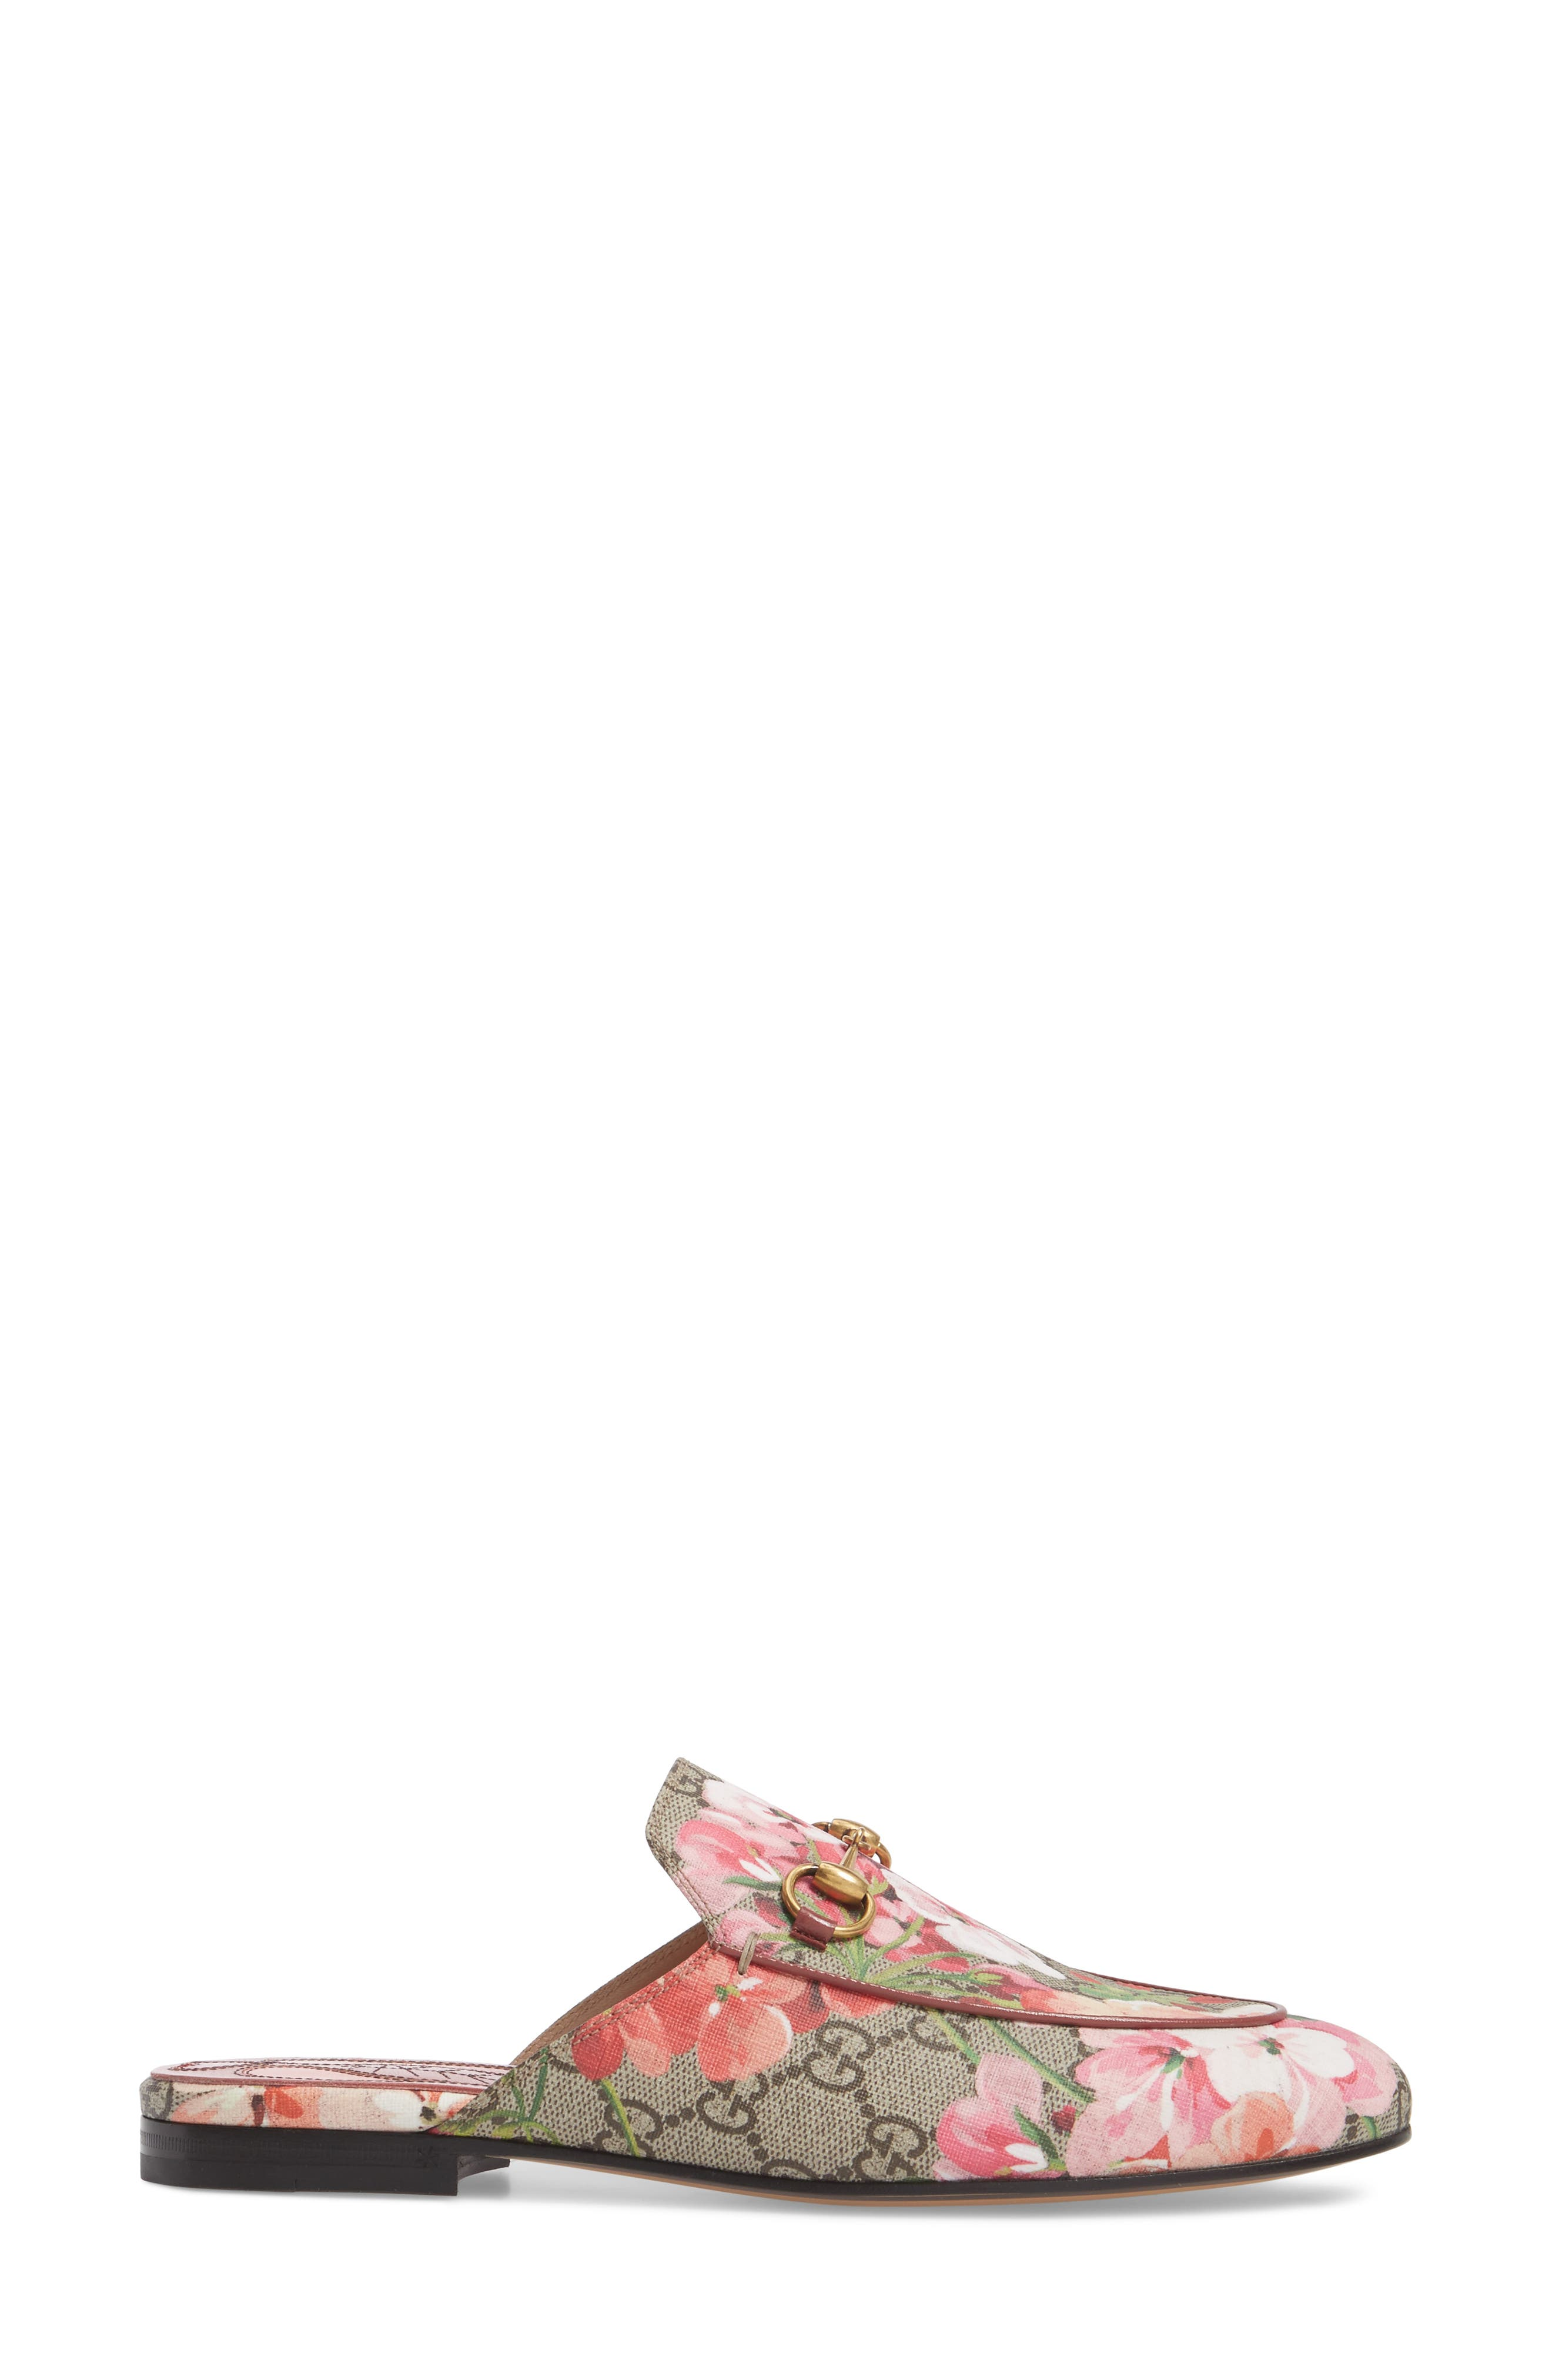 Princetown Loafer Mule,                             Alternate thumbnail 3, color,                             BEIGE/ FLORAL PRINT